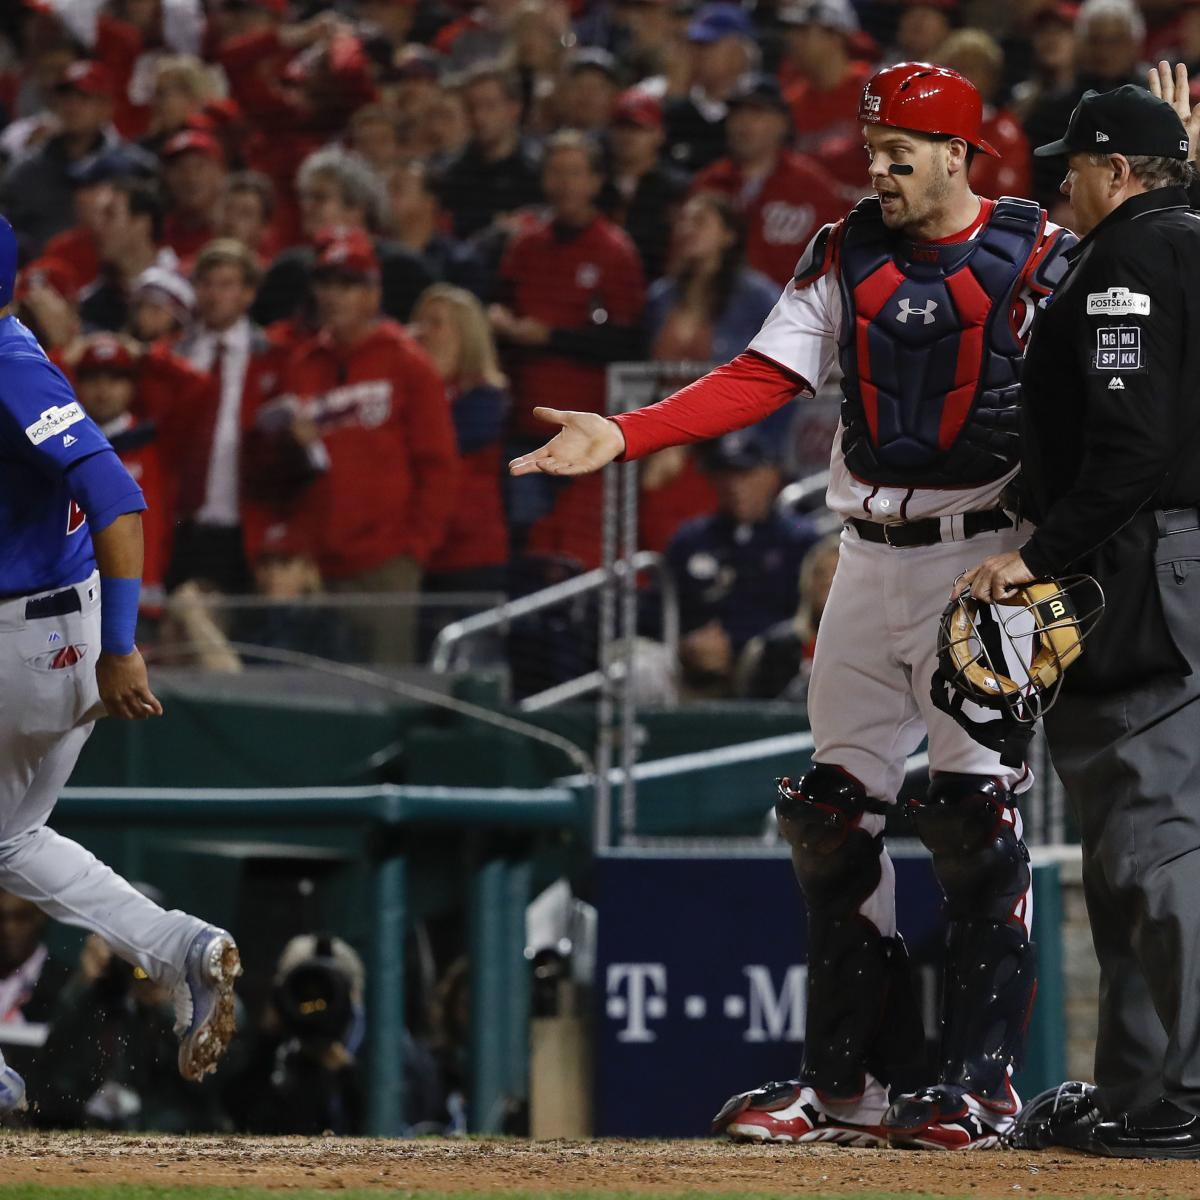 Joe Torre Says Umpires Missed Passed Ball Call In